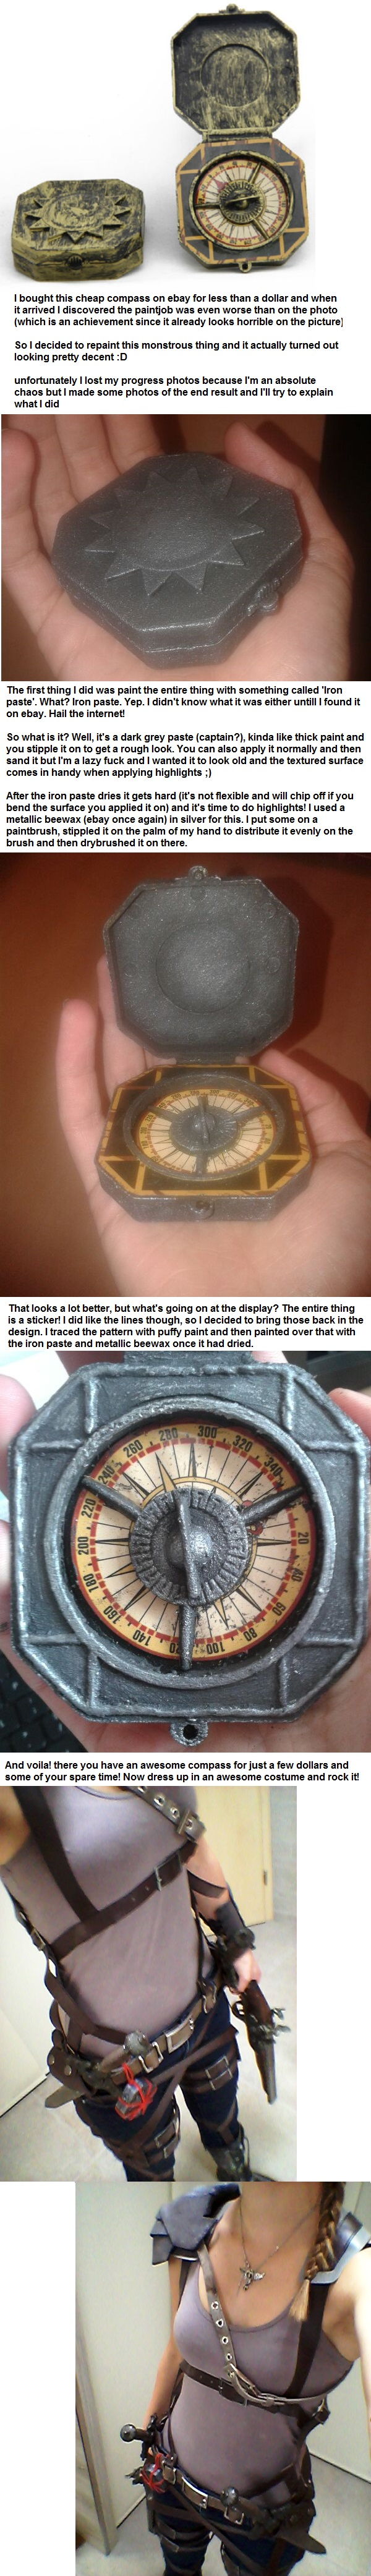 DIY: Turn a $1 toy compass into awesomeness! by Locosplay ...